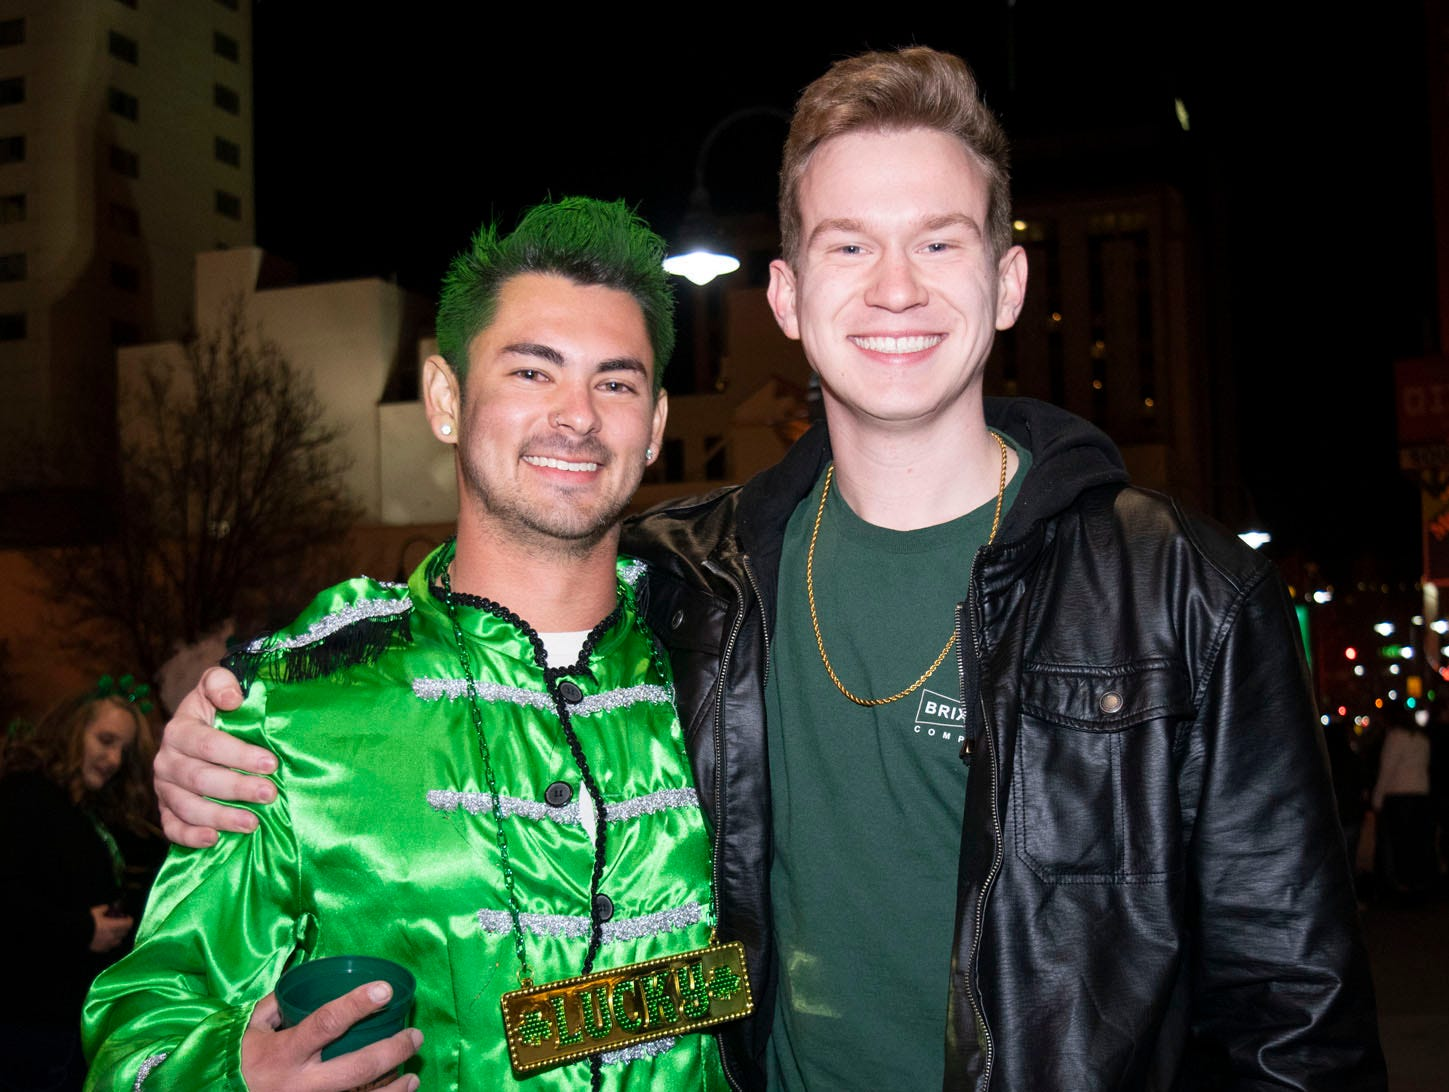 Nick Carlsen and Timothy Smiith attend the 2019 Leprechaun Crawl on Saturday, March 16, 2019. Reno, Nev.